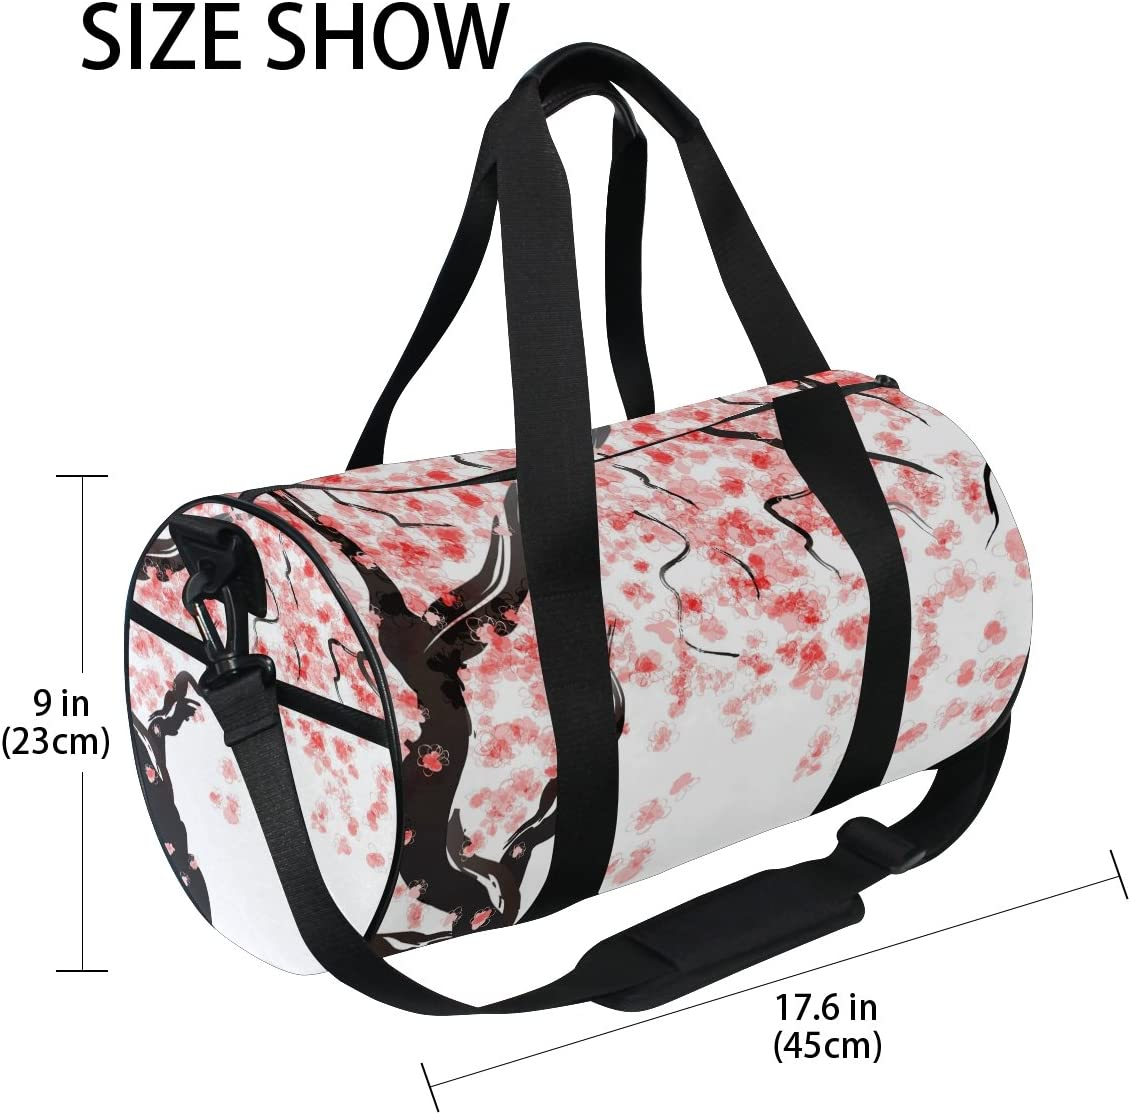 ALAZA Beautiful Japanese Cherry Blossom Sports Gym Duffel Bag Travel Luggage Handbag Shoulder Bag with Shoes Compartment for Men Women